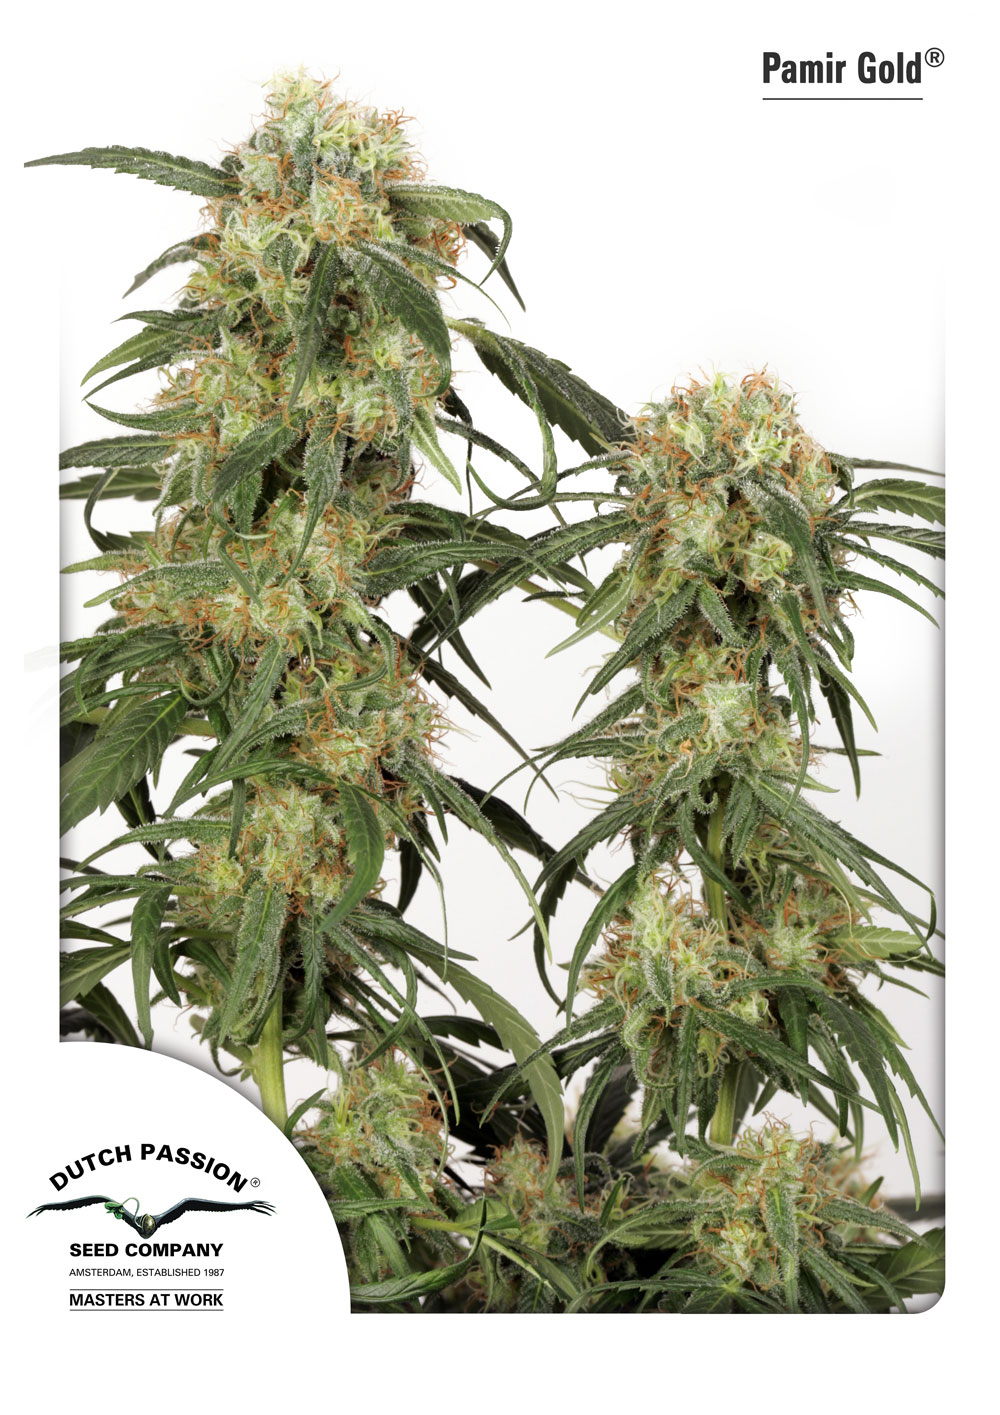 Recenzja Odmiany Pamir Gold od Dutch Passion, Dutch Seeds